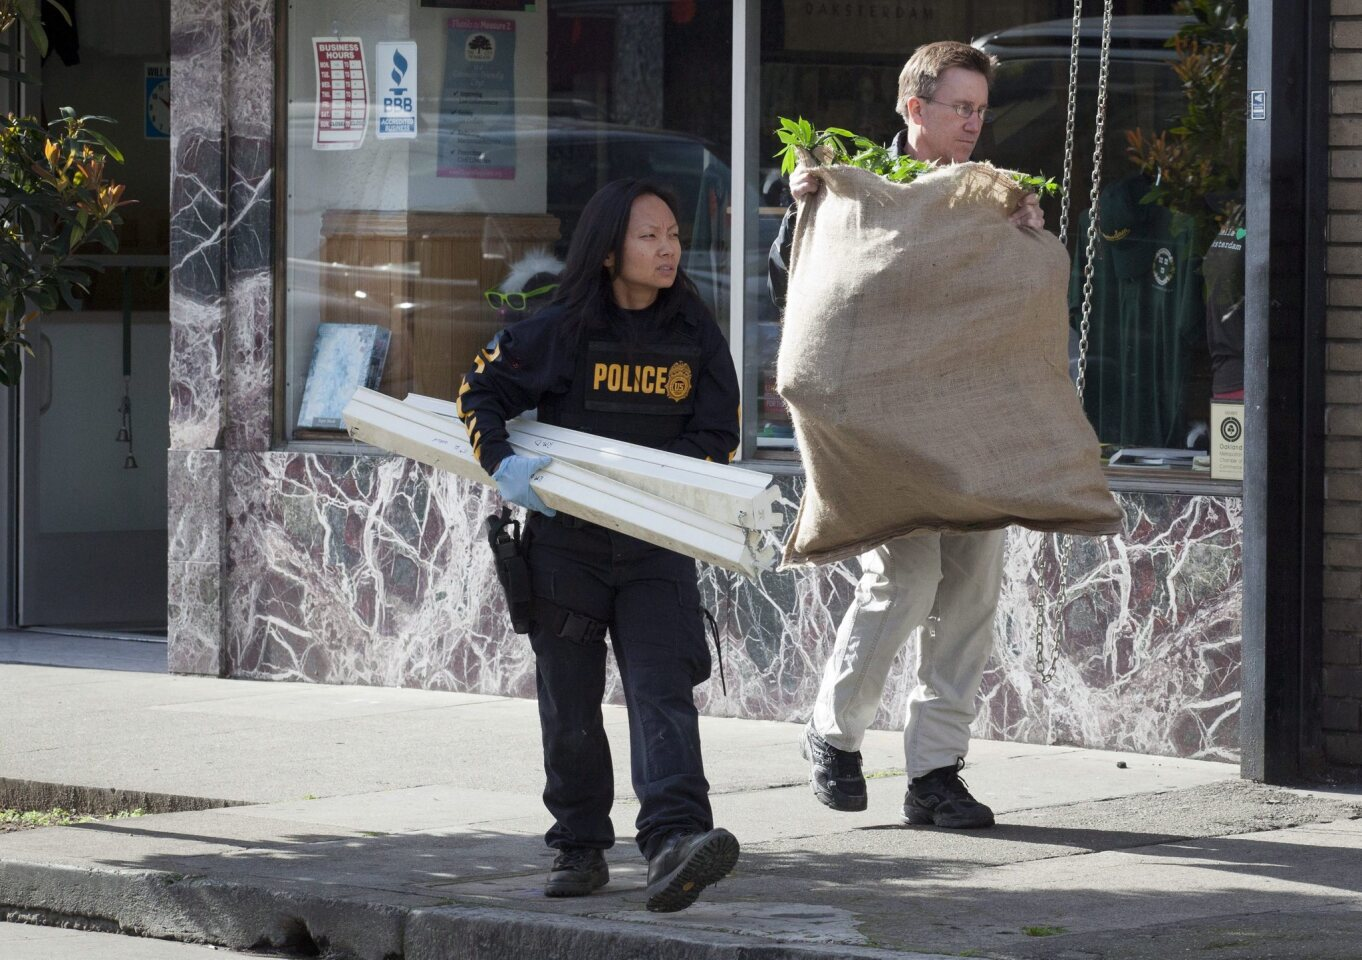 Agents from the DEA and the IRS-CID load an alleged bag of cannabis and light fixtures from the Oaksterdam gift shop during an early morning multi-agency raid in Oakland. Oaksterdam University runs several facilities in downtown Oakland for education and distribution of medical cannabis.